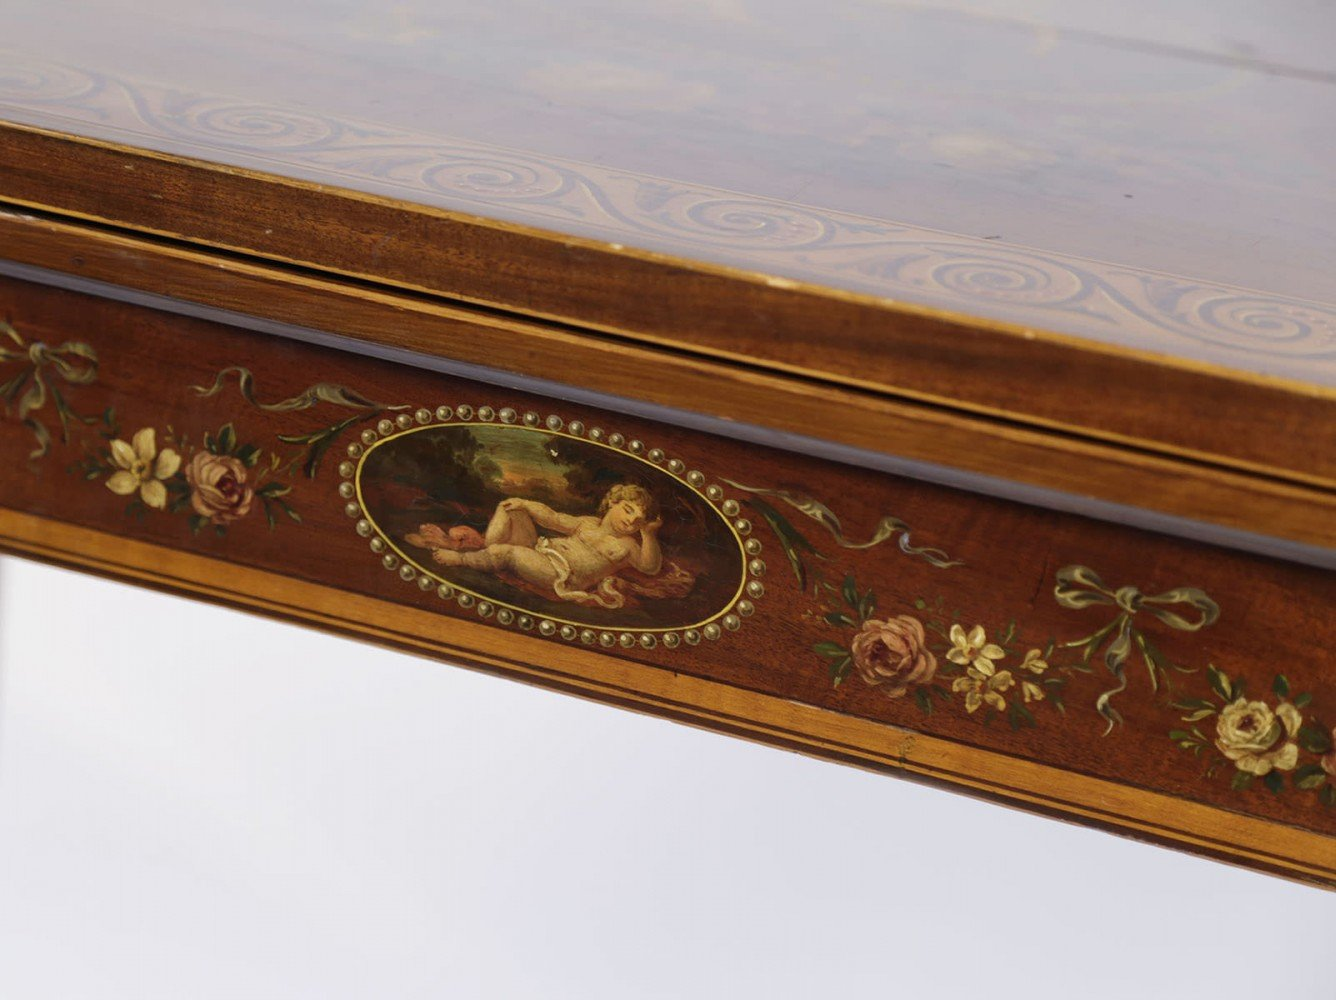 English Hepplewhite Games Table Painted in the style of Angelica Kauffmann